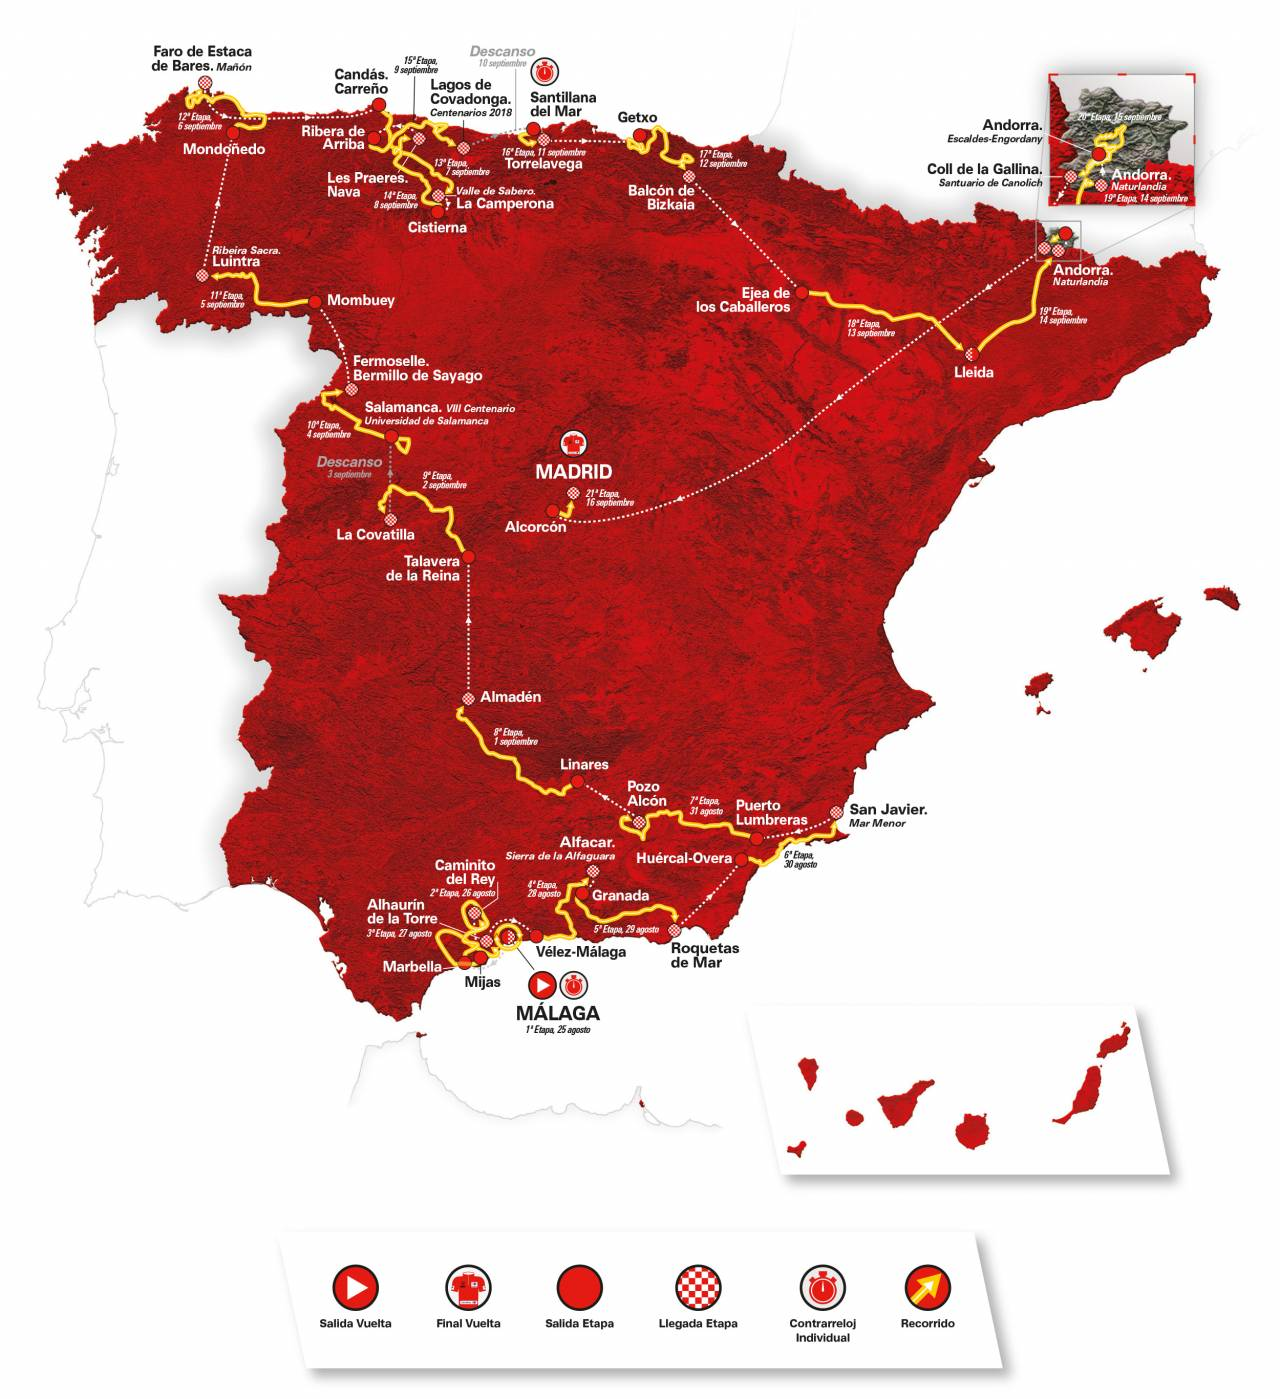 La Vuelta route map 2018